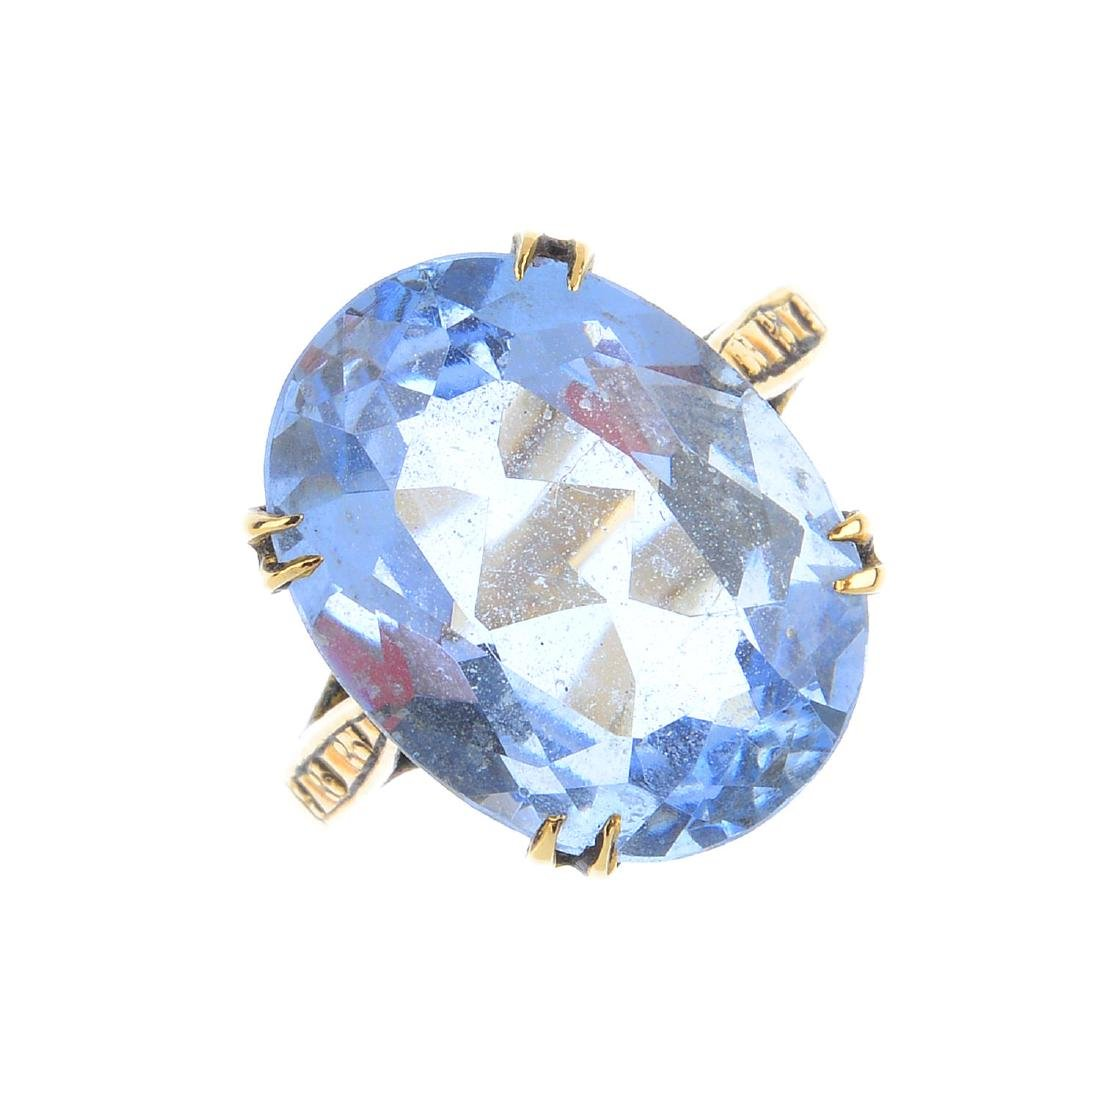 A synthetic spinel dress ring. The oval-shape synthetic